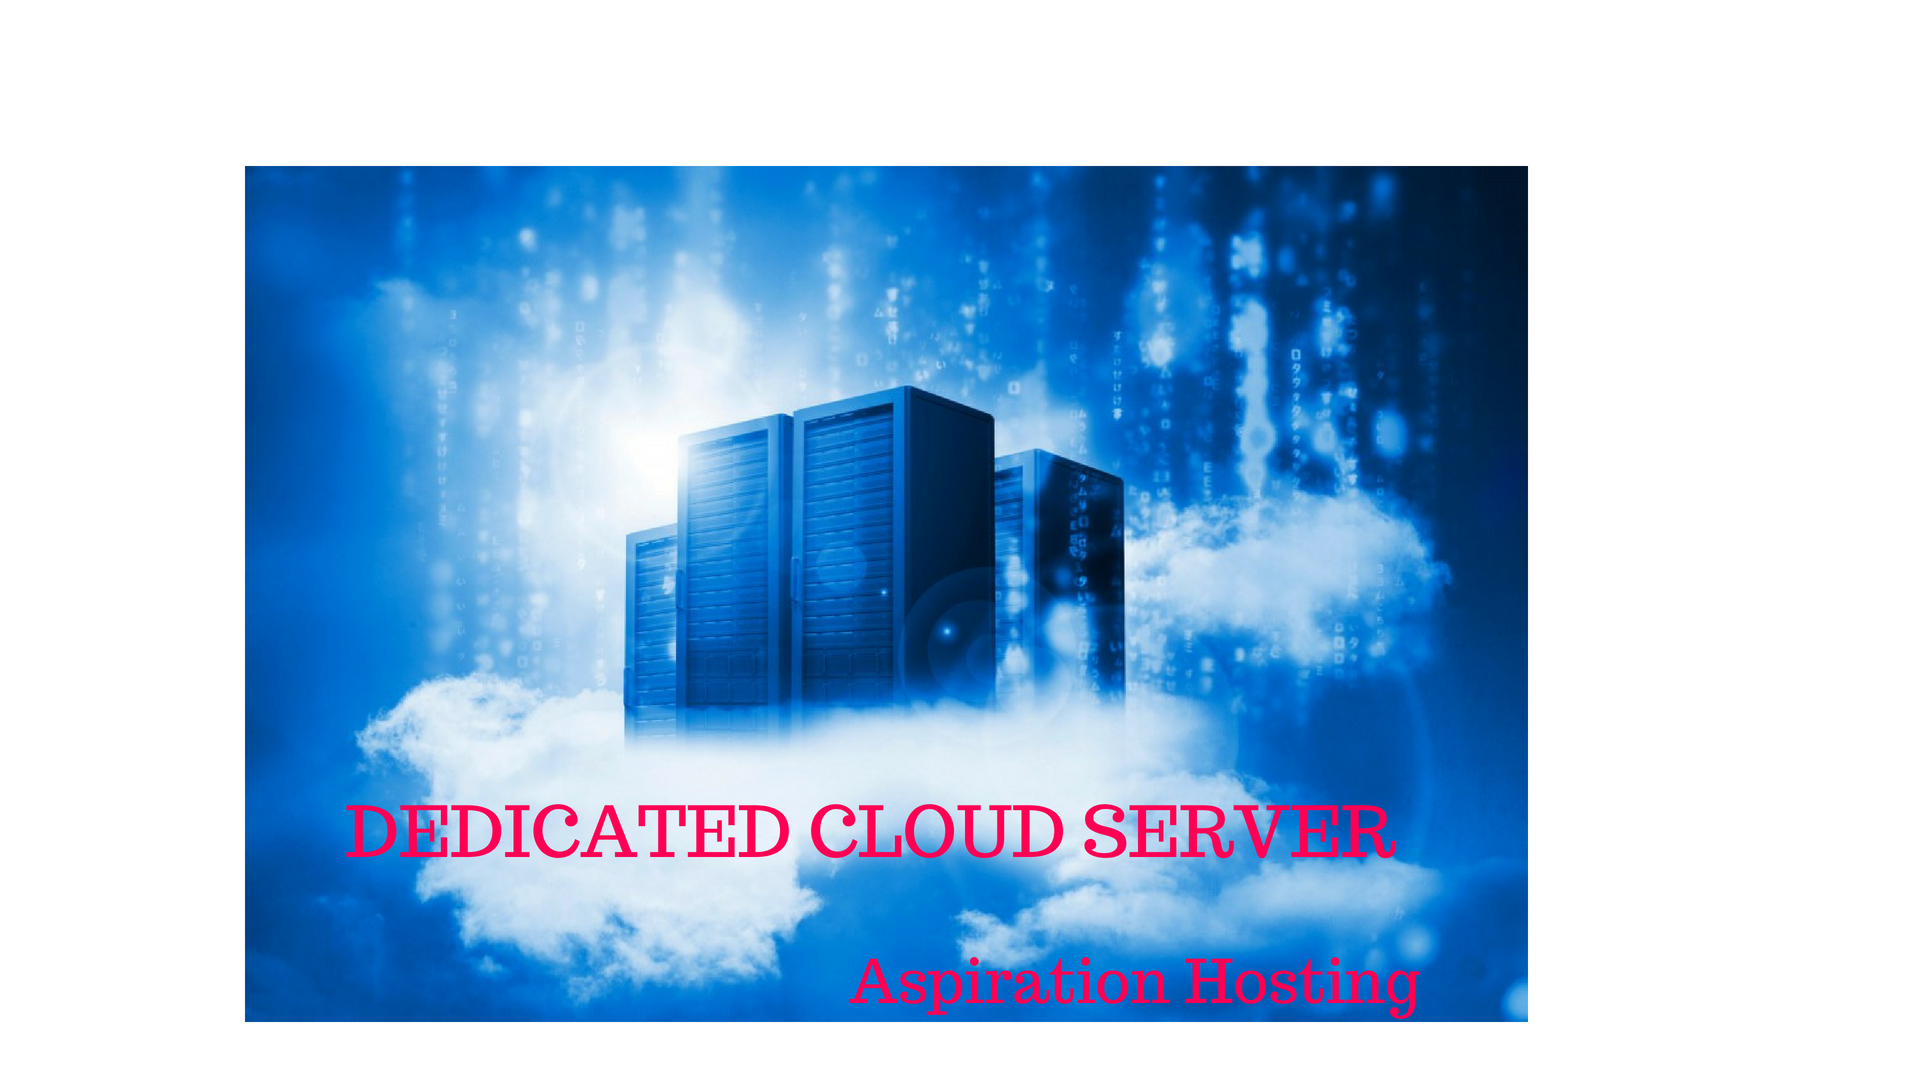 dedicated cloud server